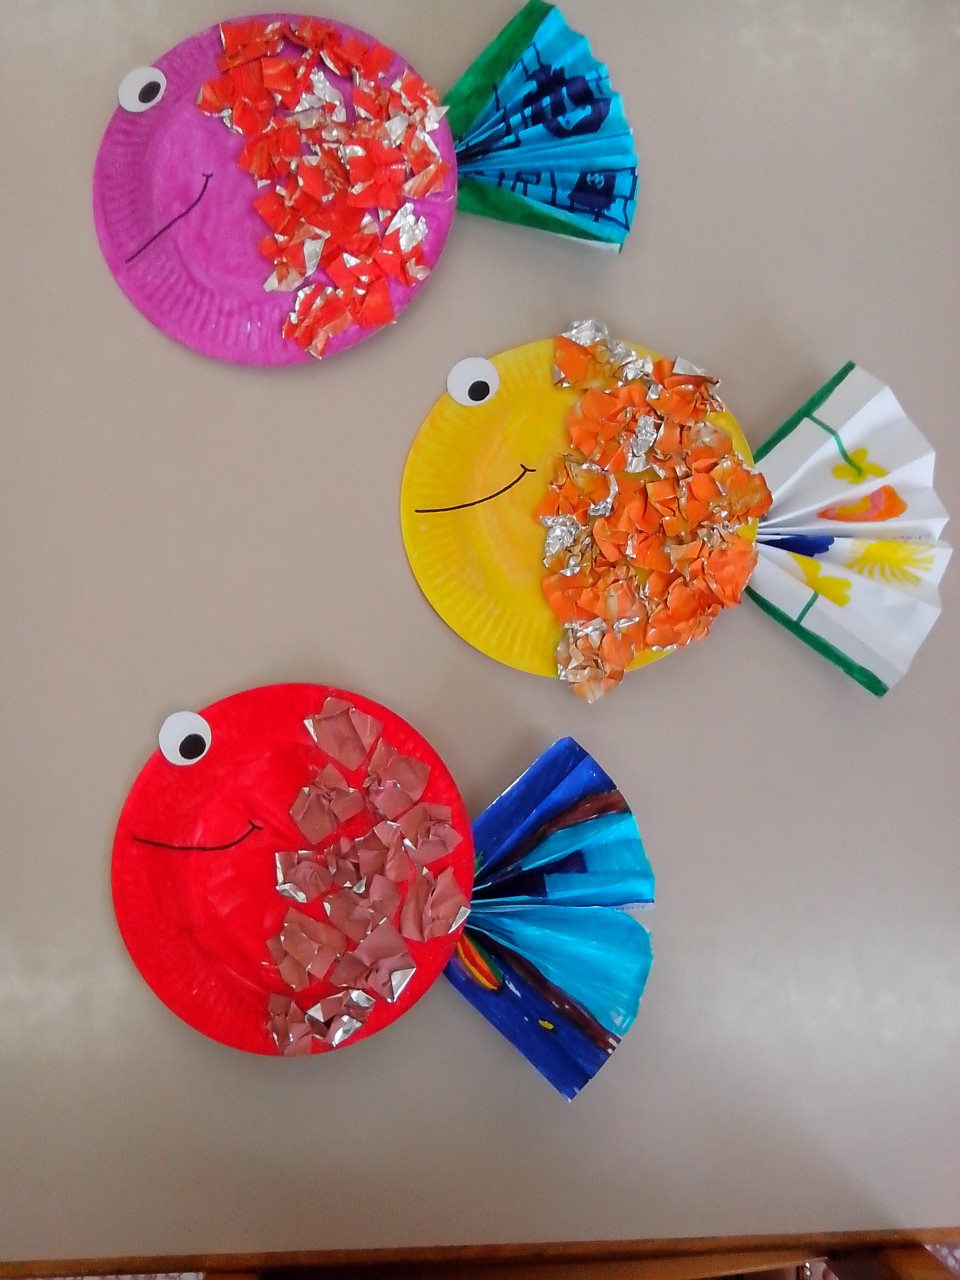 Paper Craft Ideas For Kids Under 5  Paper Plate Tropical Fish